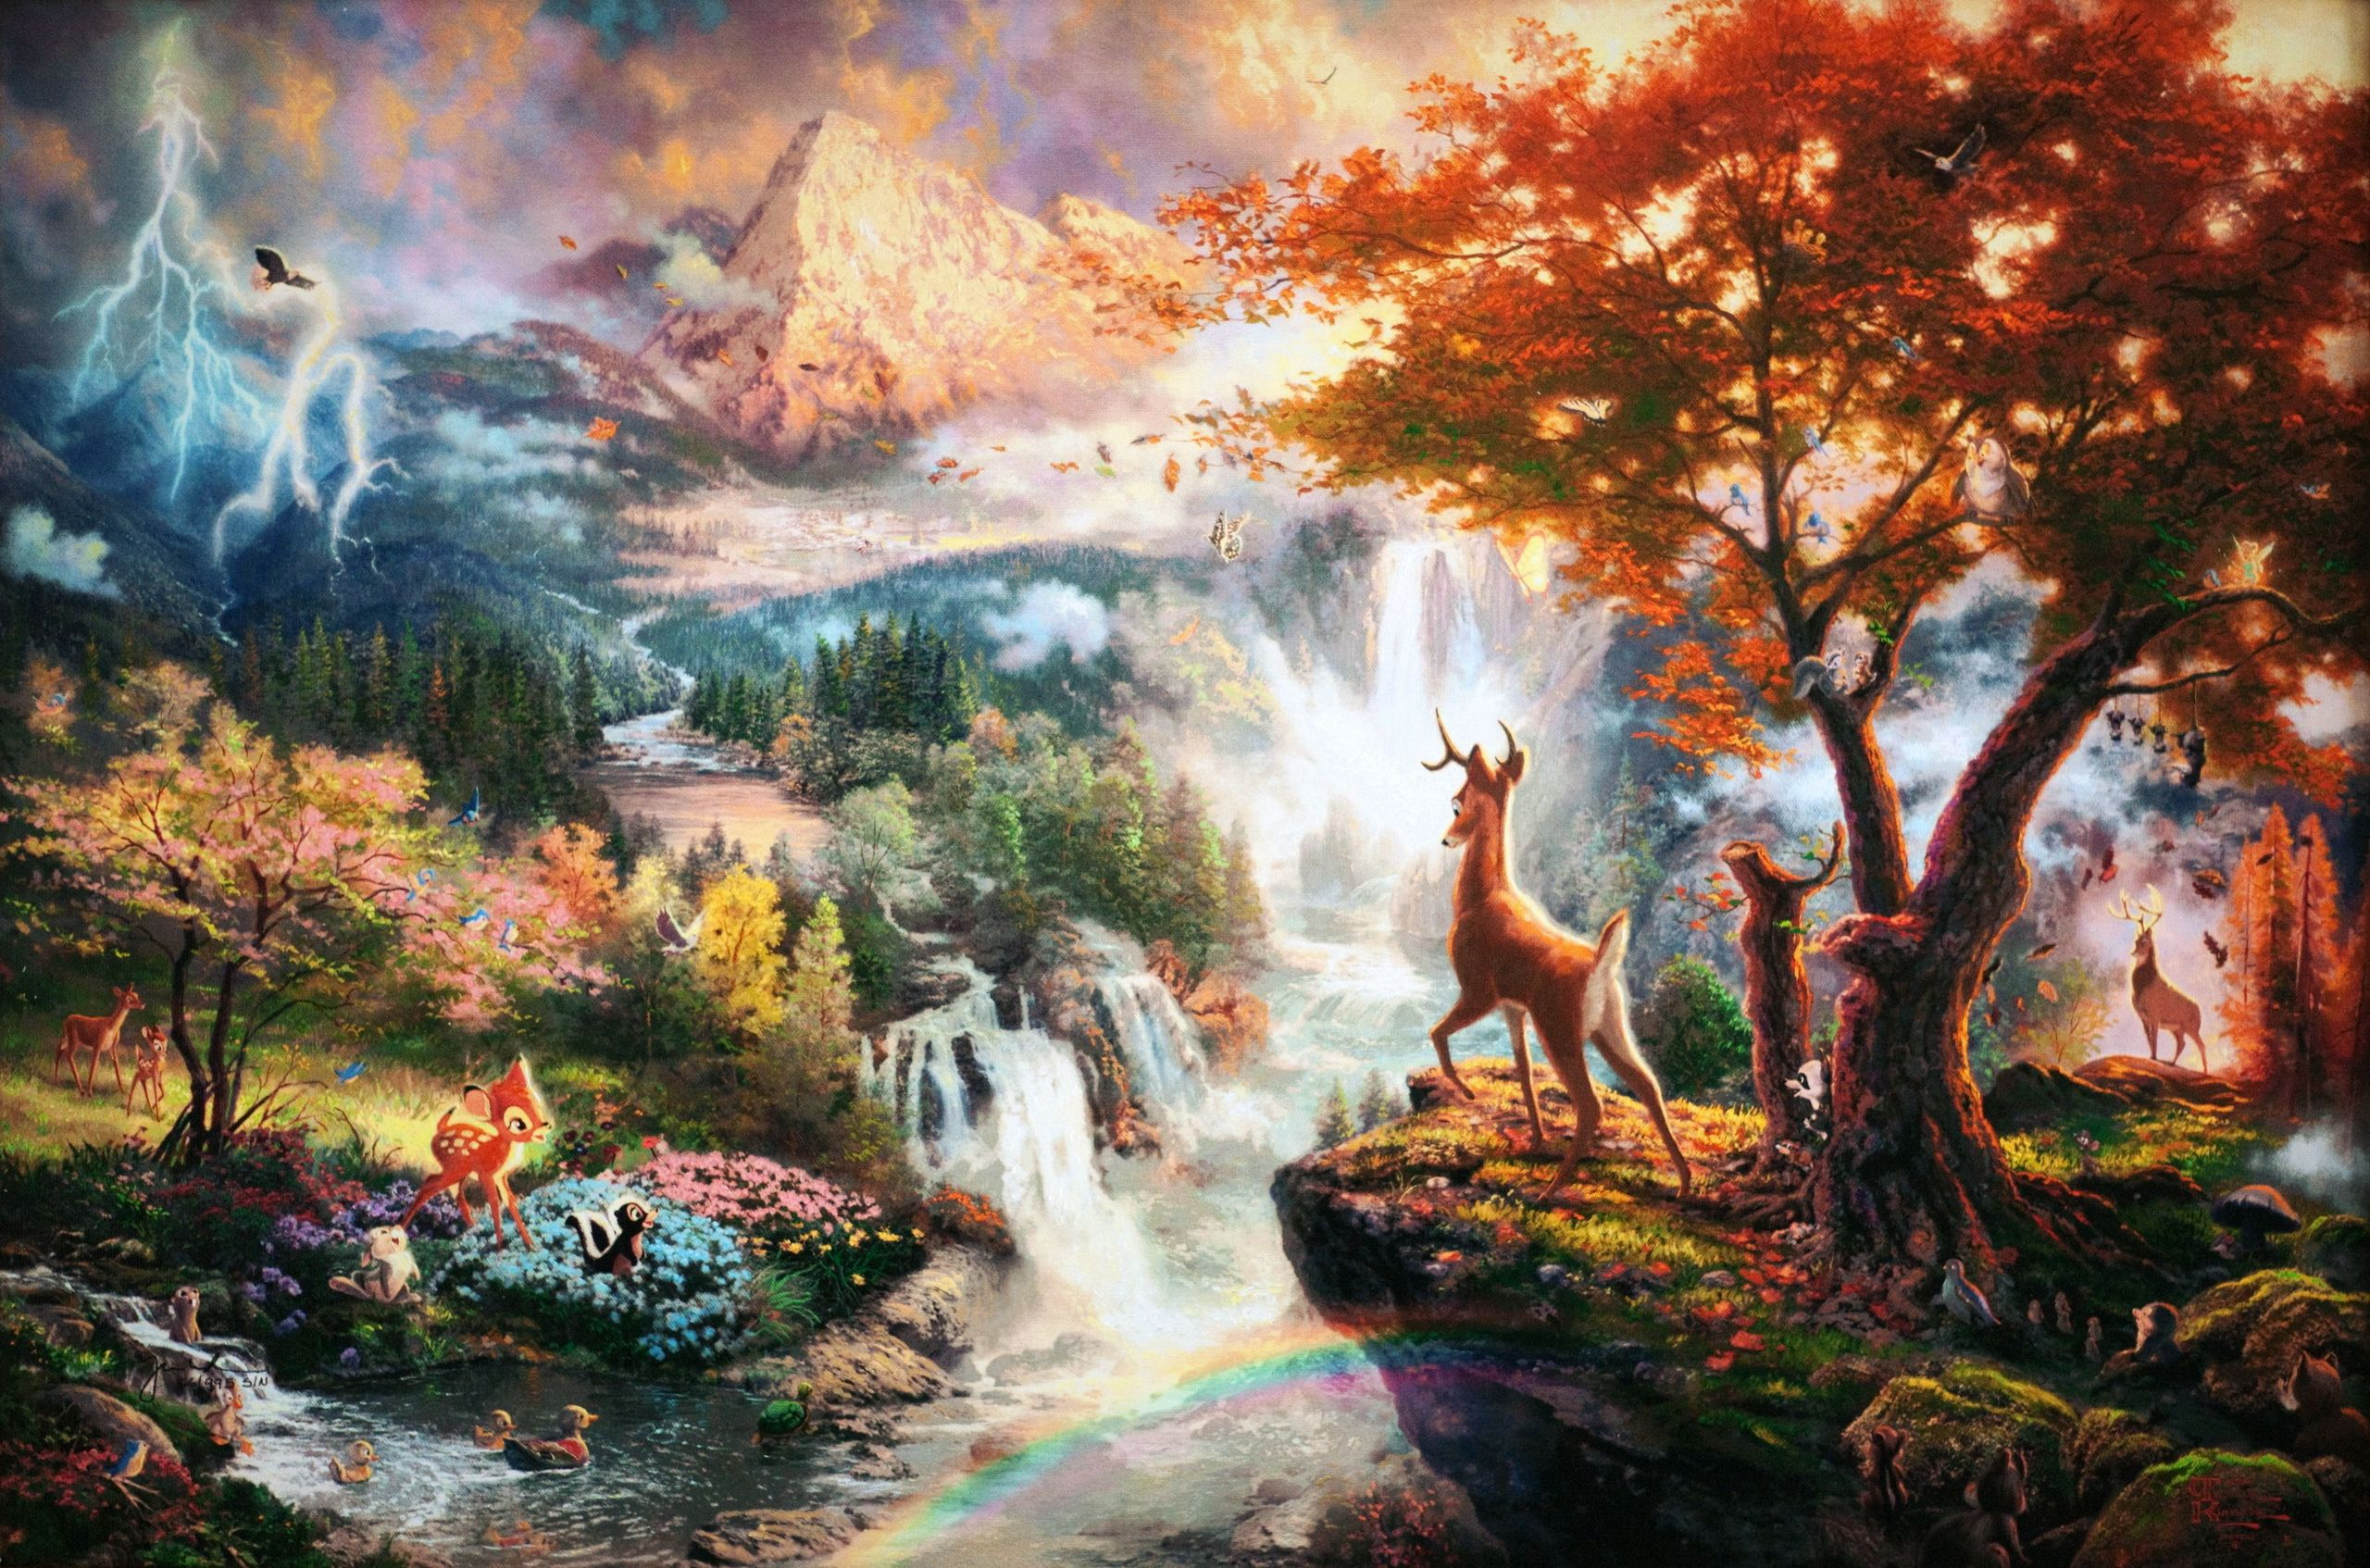 ... Thomas Kinkade's Disney Paintings - Bambi wallpaper photos (28821938